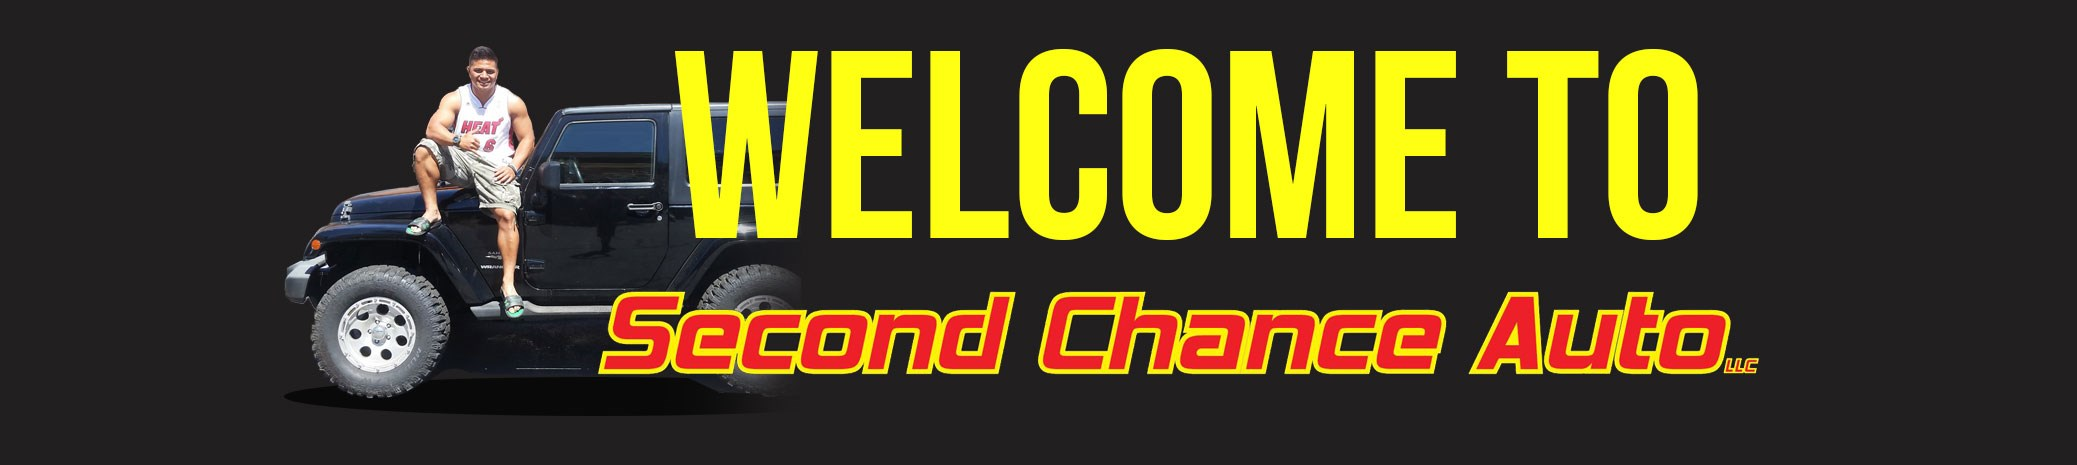 Banner: Welcome to Second Chance Auto